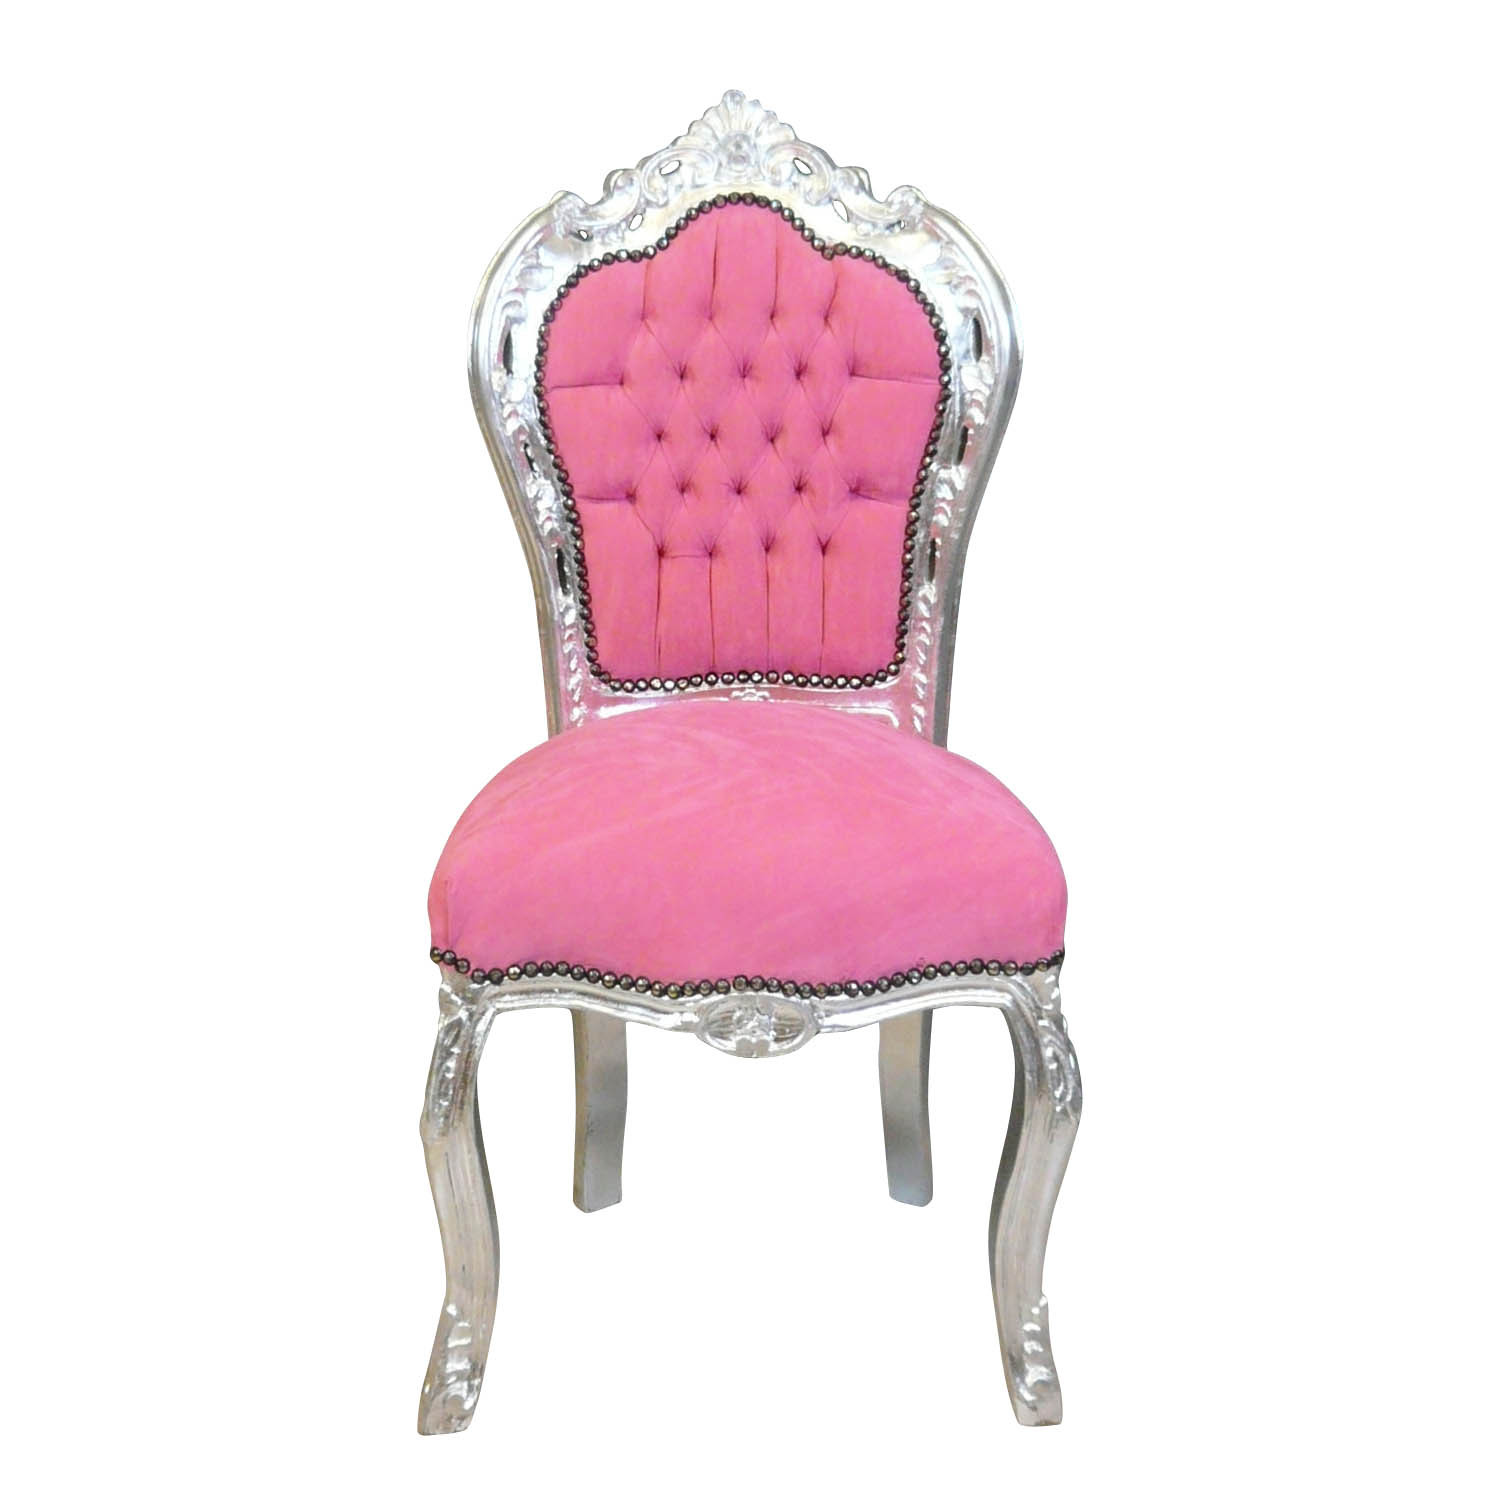 Chaise baroque galerie photo des chaises for Chaise rose